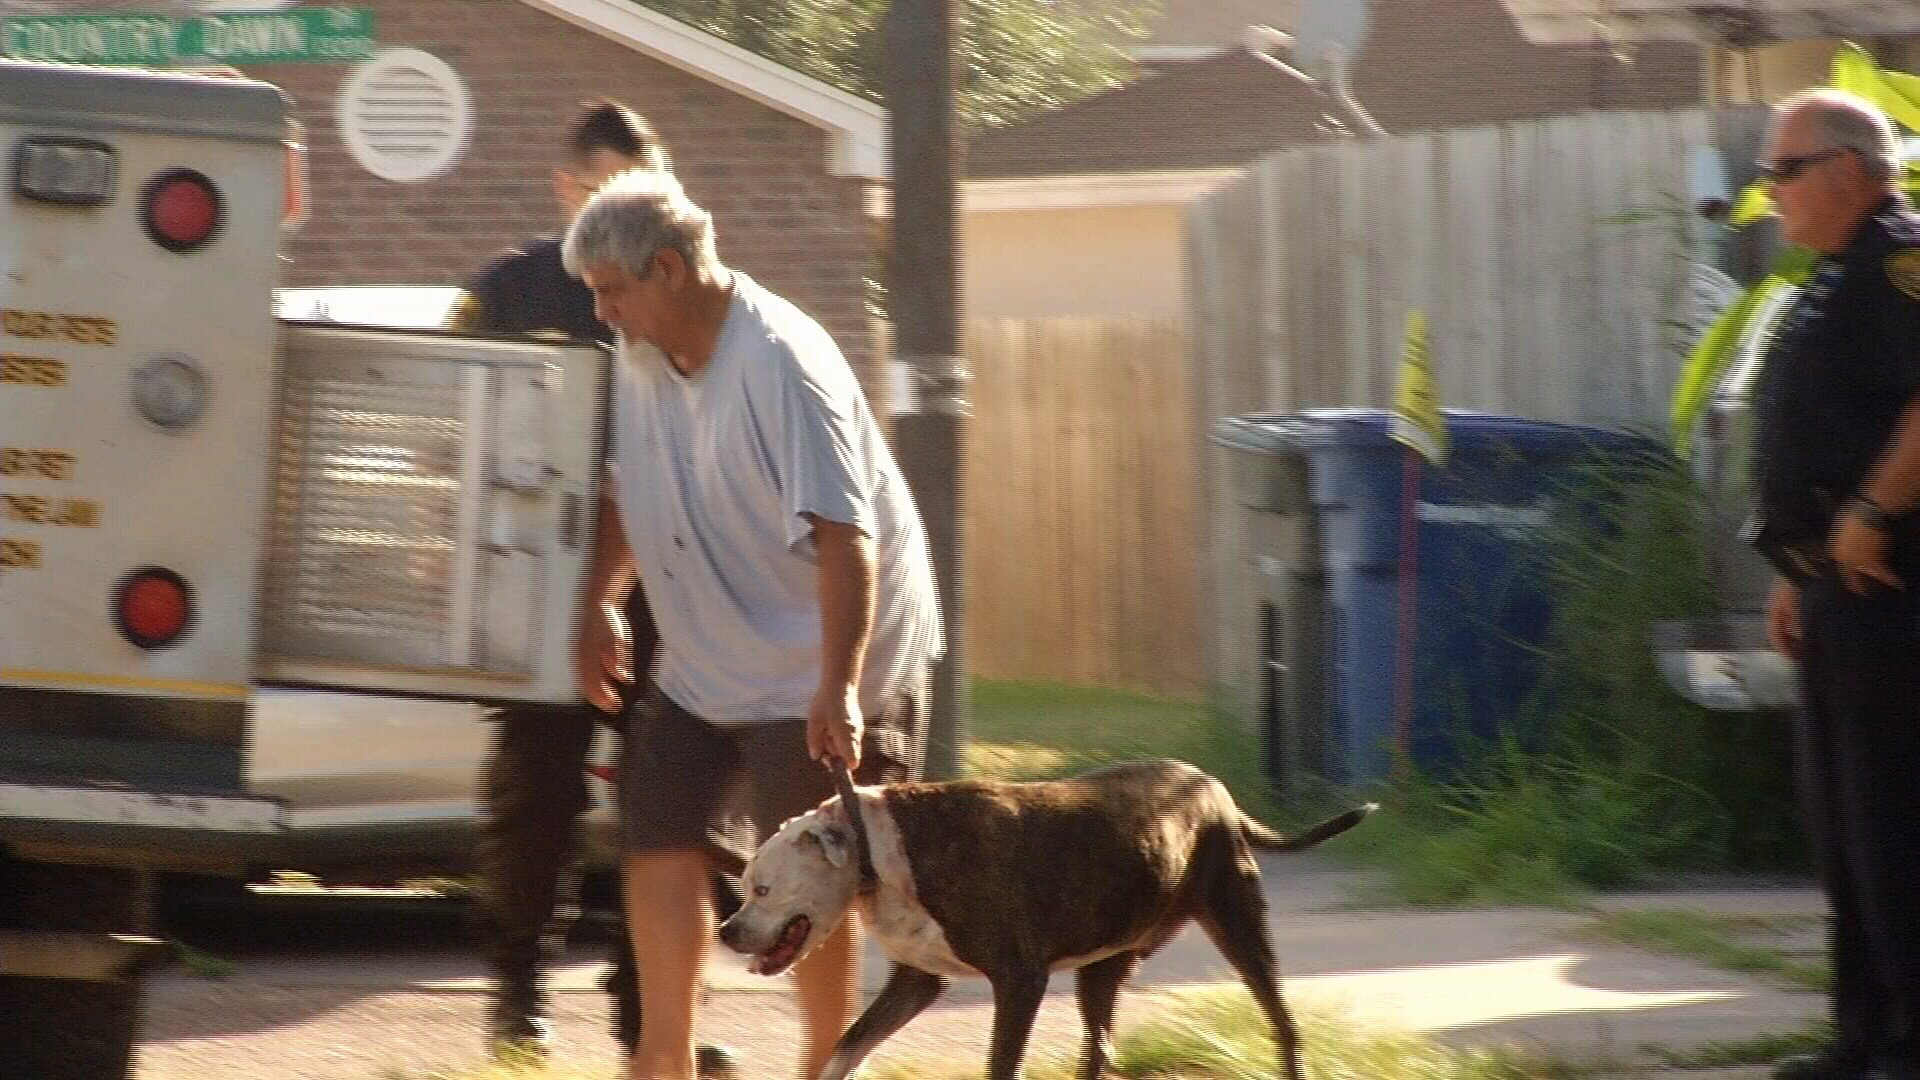 Animal Care Services picked up the pit bull after it attacked a woman and her dog on the 13000 block of Shelton Blvd.